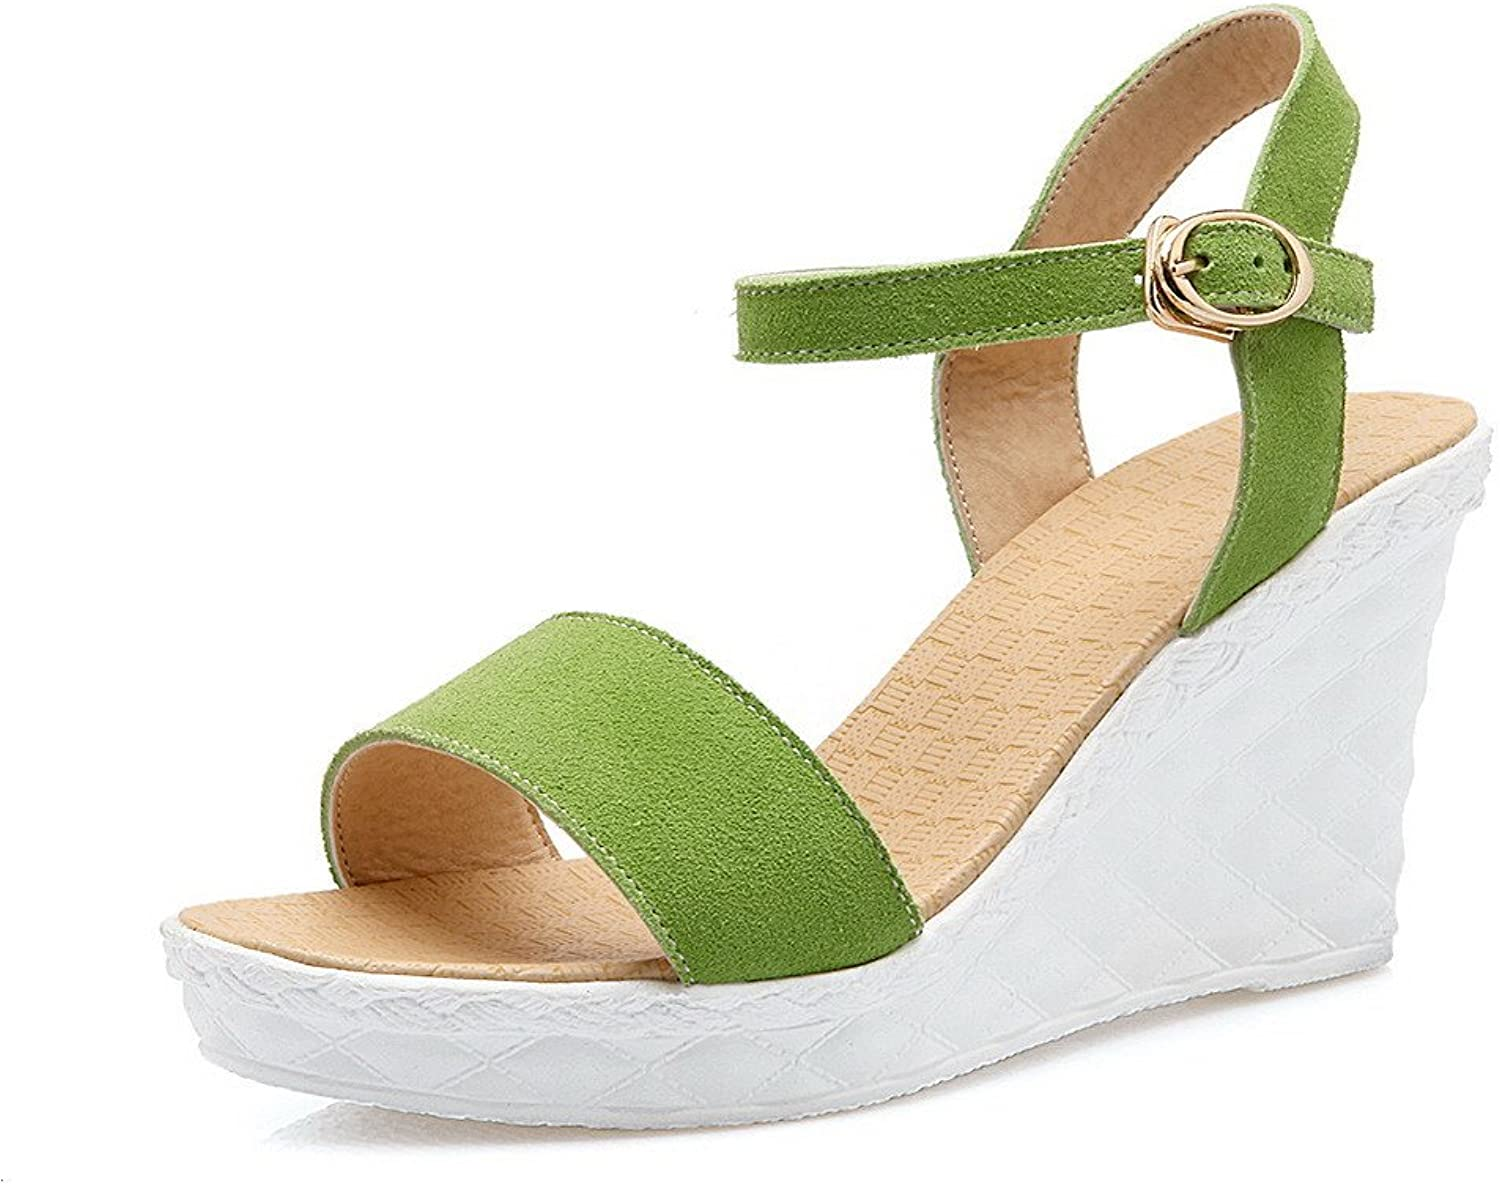 AllhqFashion Women's Buckle Open Toe High-Heels Imitated Suede Solid Wedges-Sandals